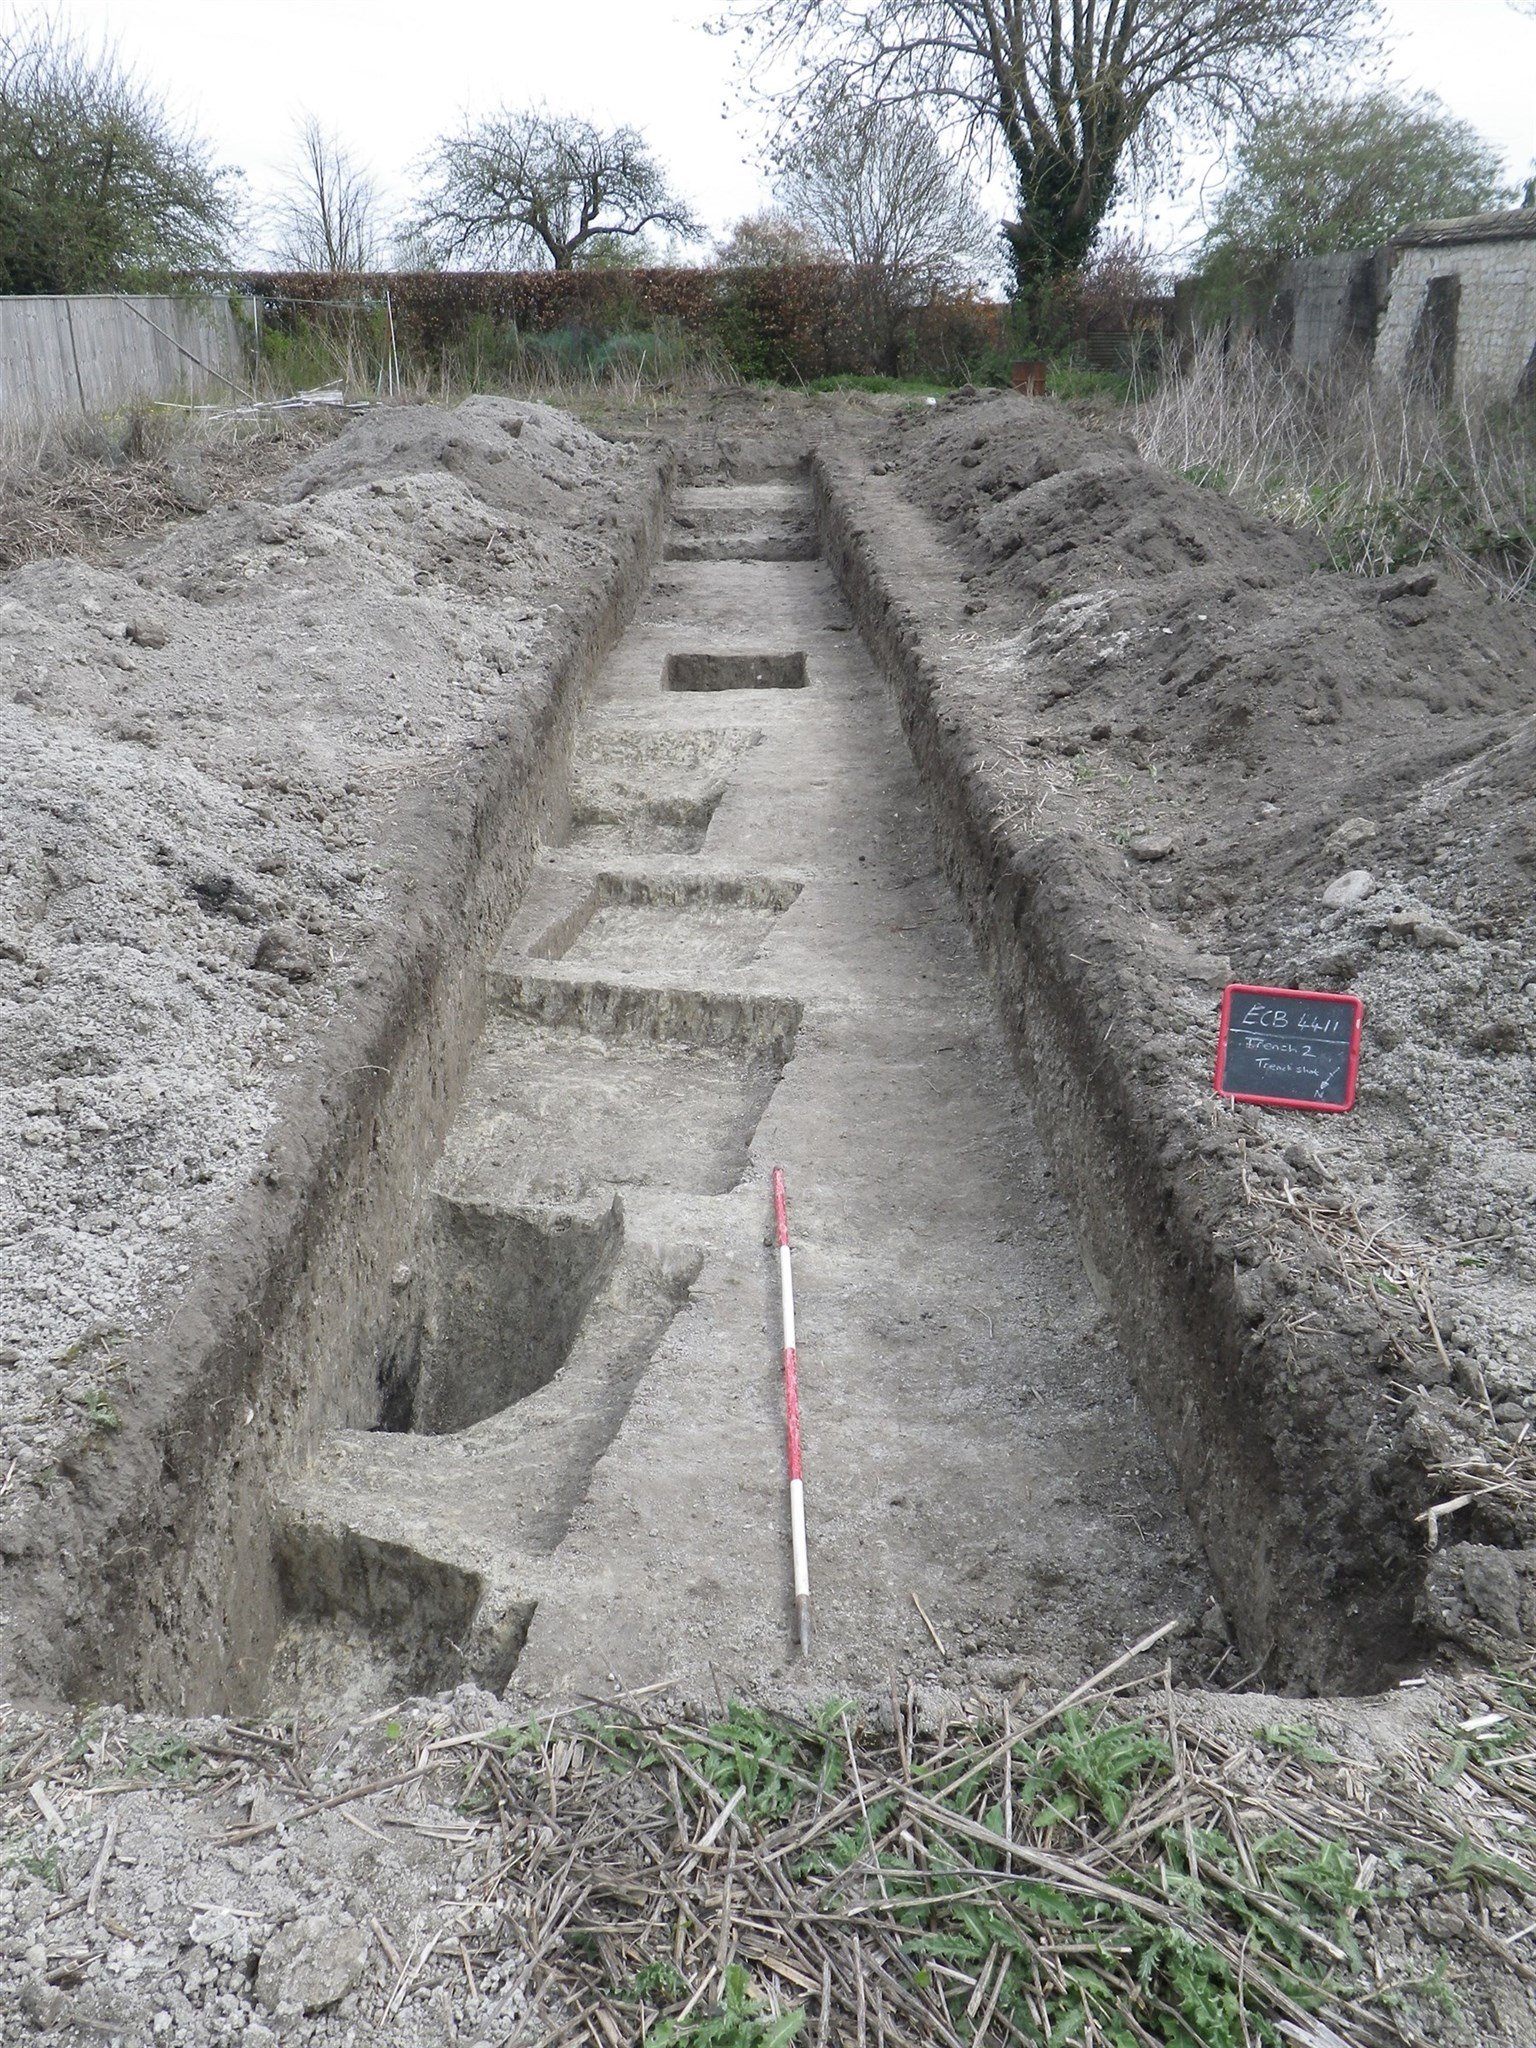 Excavation Trench 2 at Swaffham Bulbeck